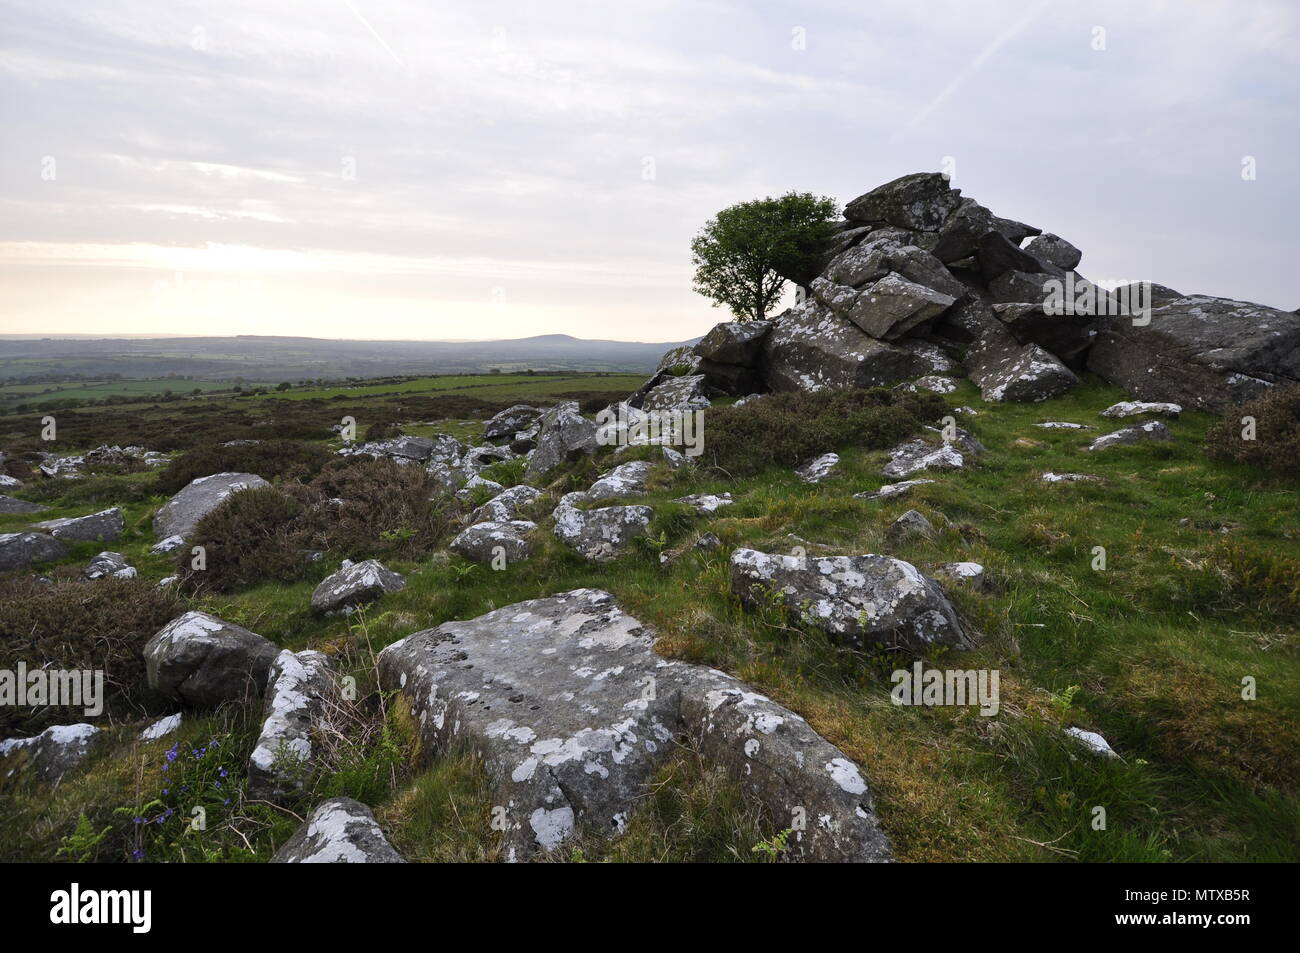 Coed Ty Canol national nature reserve, Preselli Pembrokeshire Wales - Stock Image